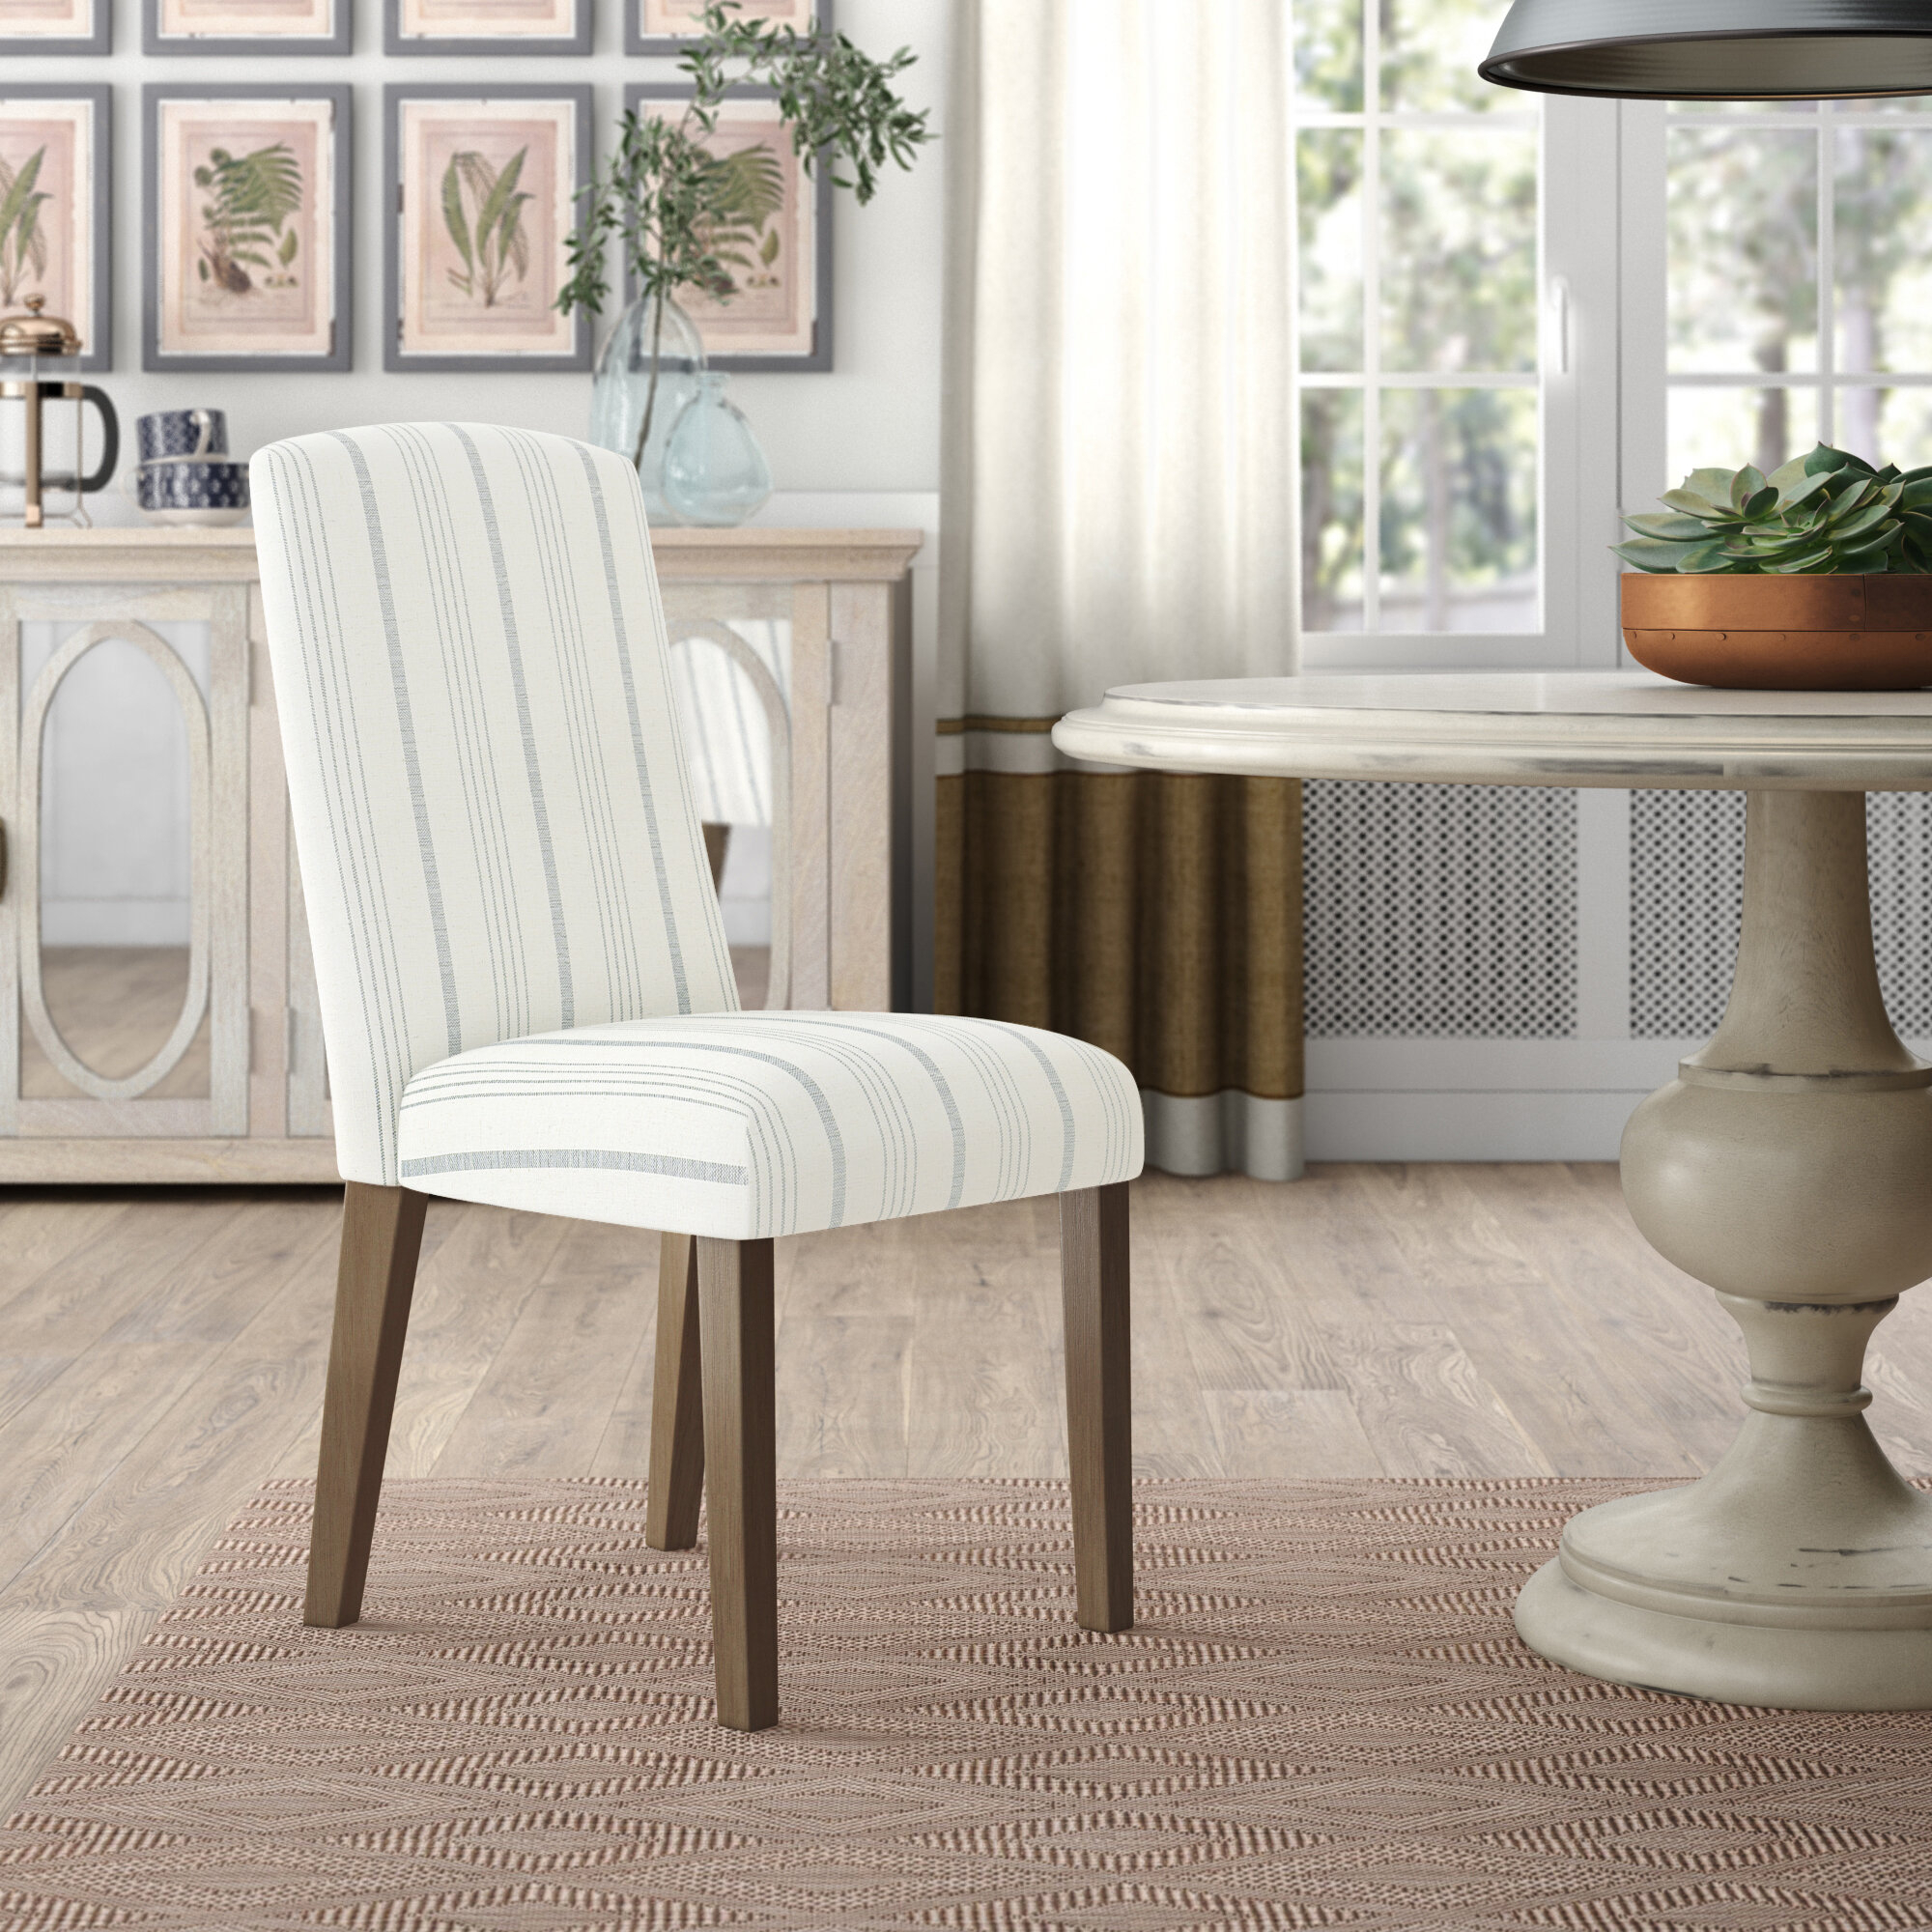 Coastal Parsons Kitchen & Dining Chairs You'Ll Love In 2021 With Aime Upholstered Parsons Chairs In Beige (View 5 of 15)